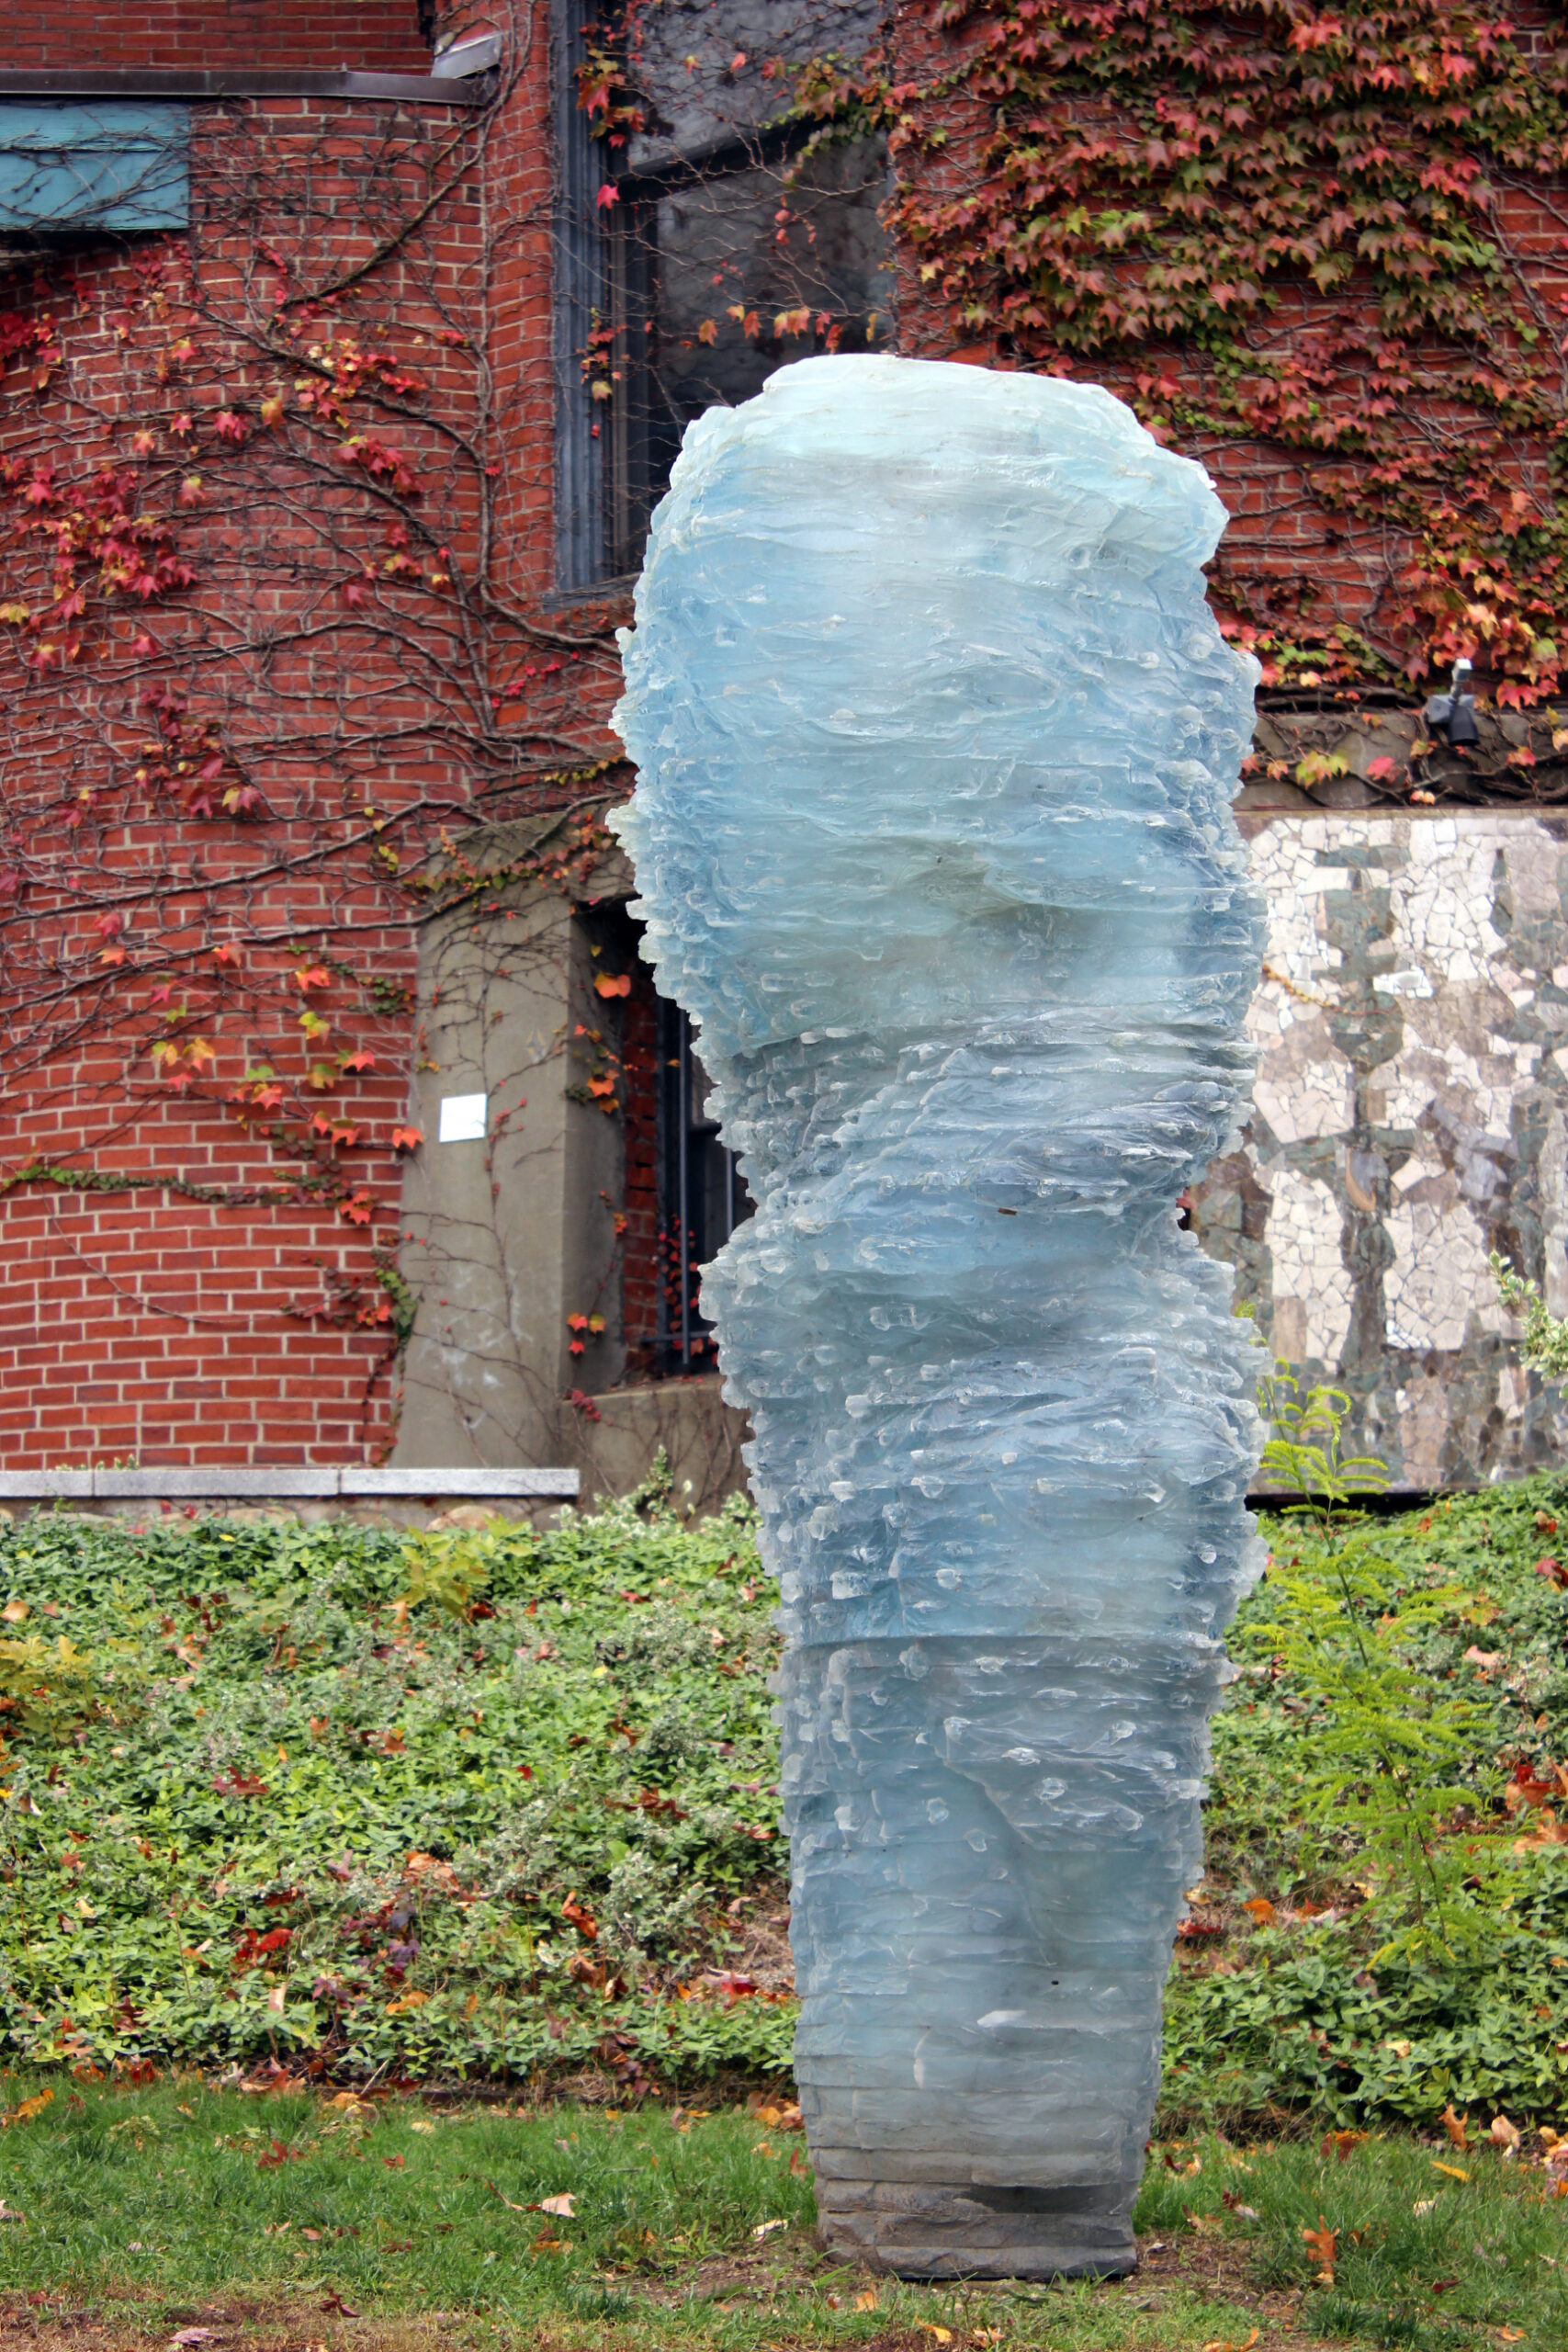 a clear sculpture in the shape of a figure